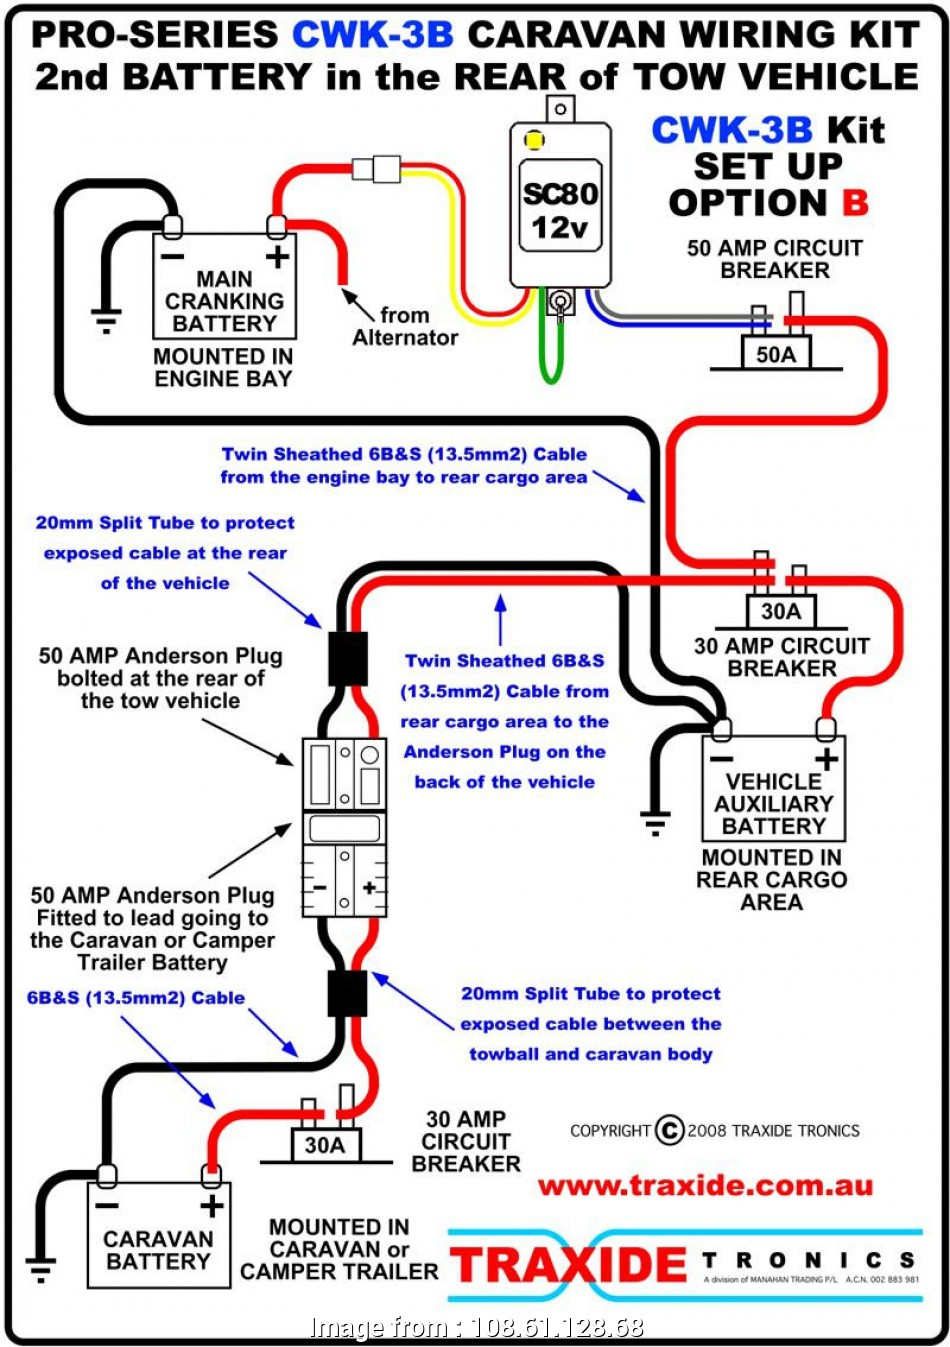 Wiring Diagram For 30 Amp Rv Receptacle from tonetastic.info